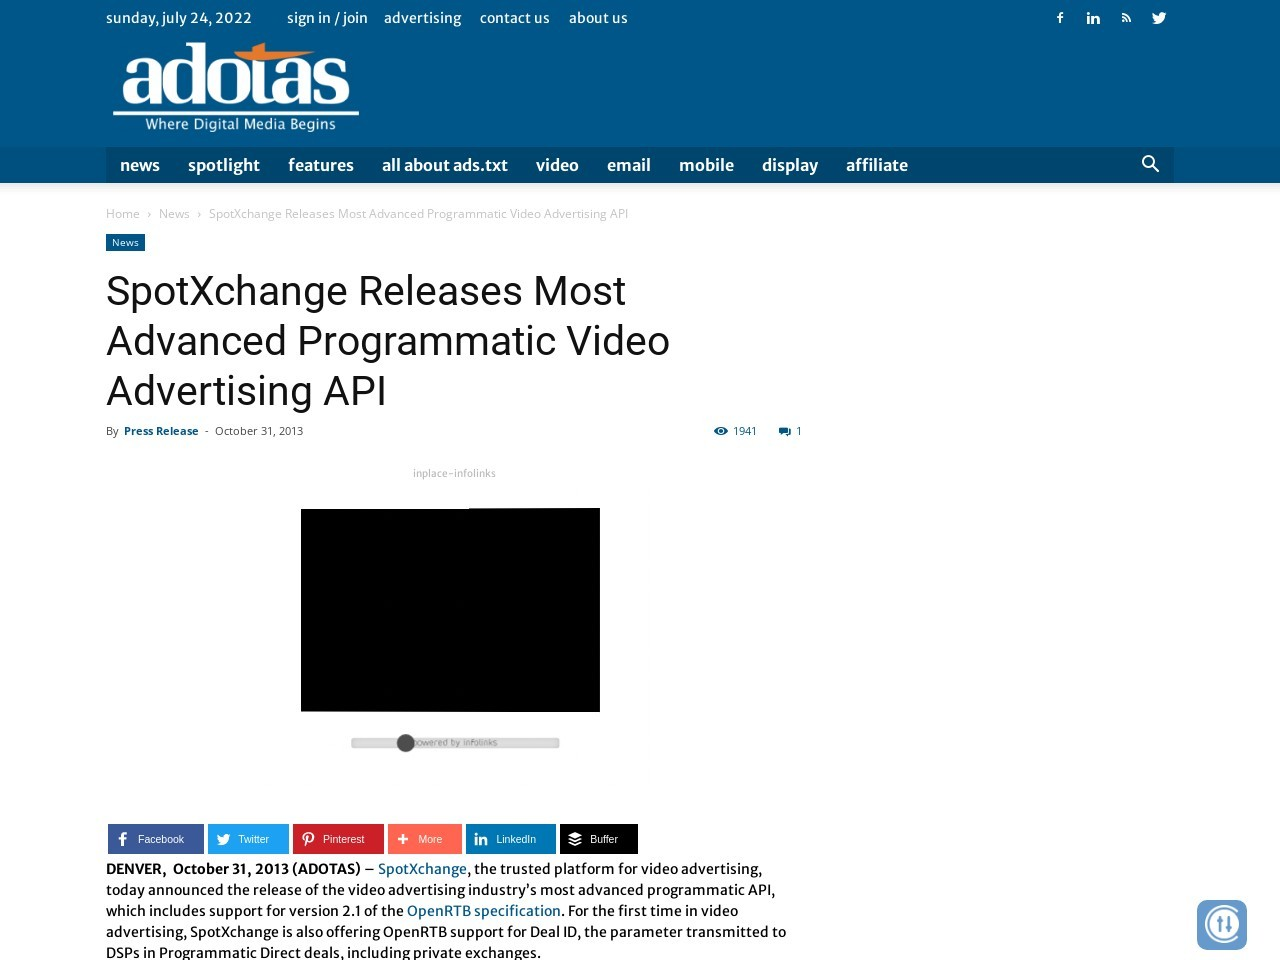 SpotXchange Releases Most Advanced Programmatic Video Advertising API